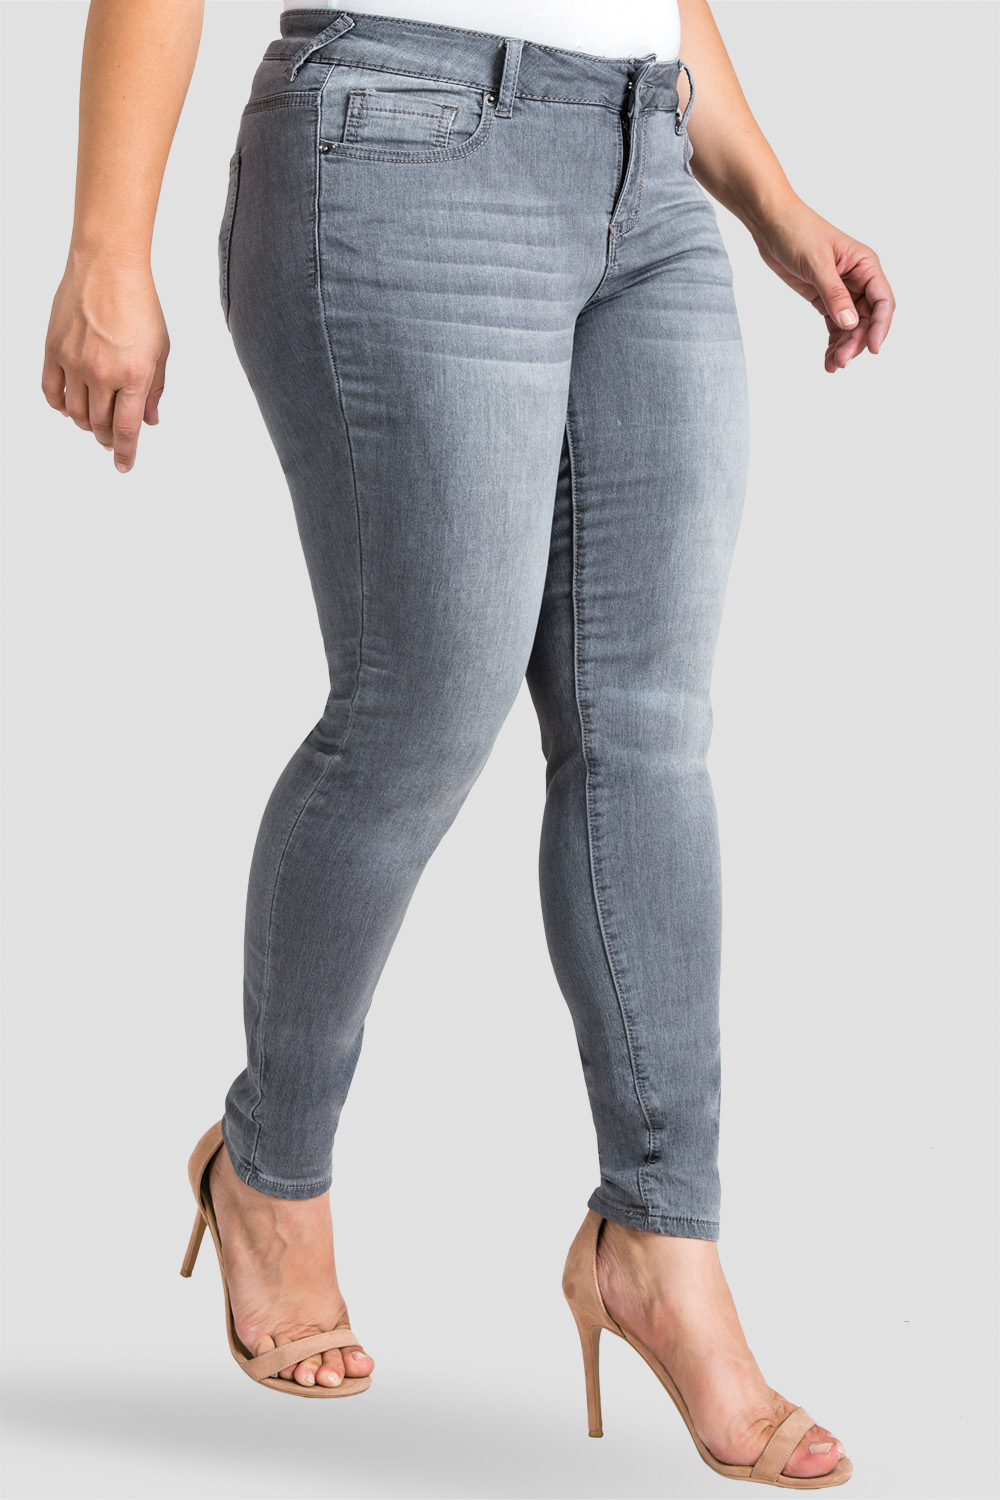 Standards & Practices Plus Size Grey Skinny Jeans